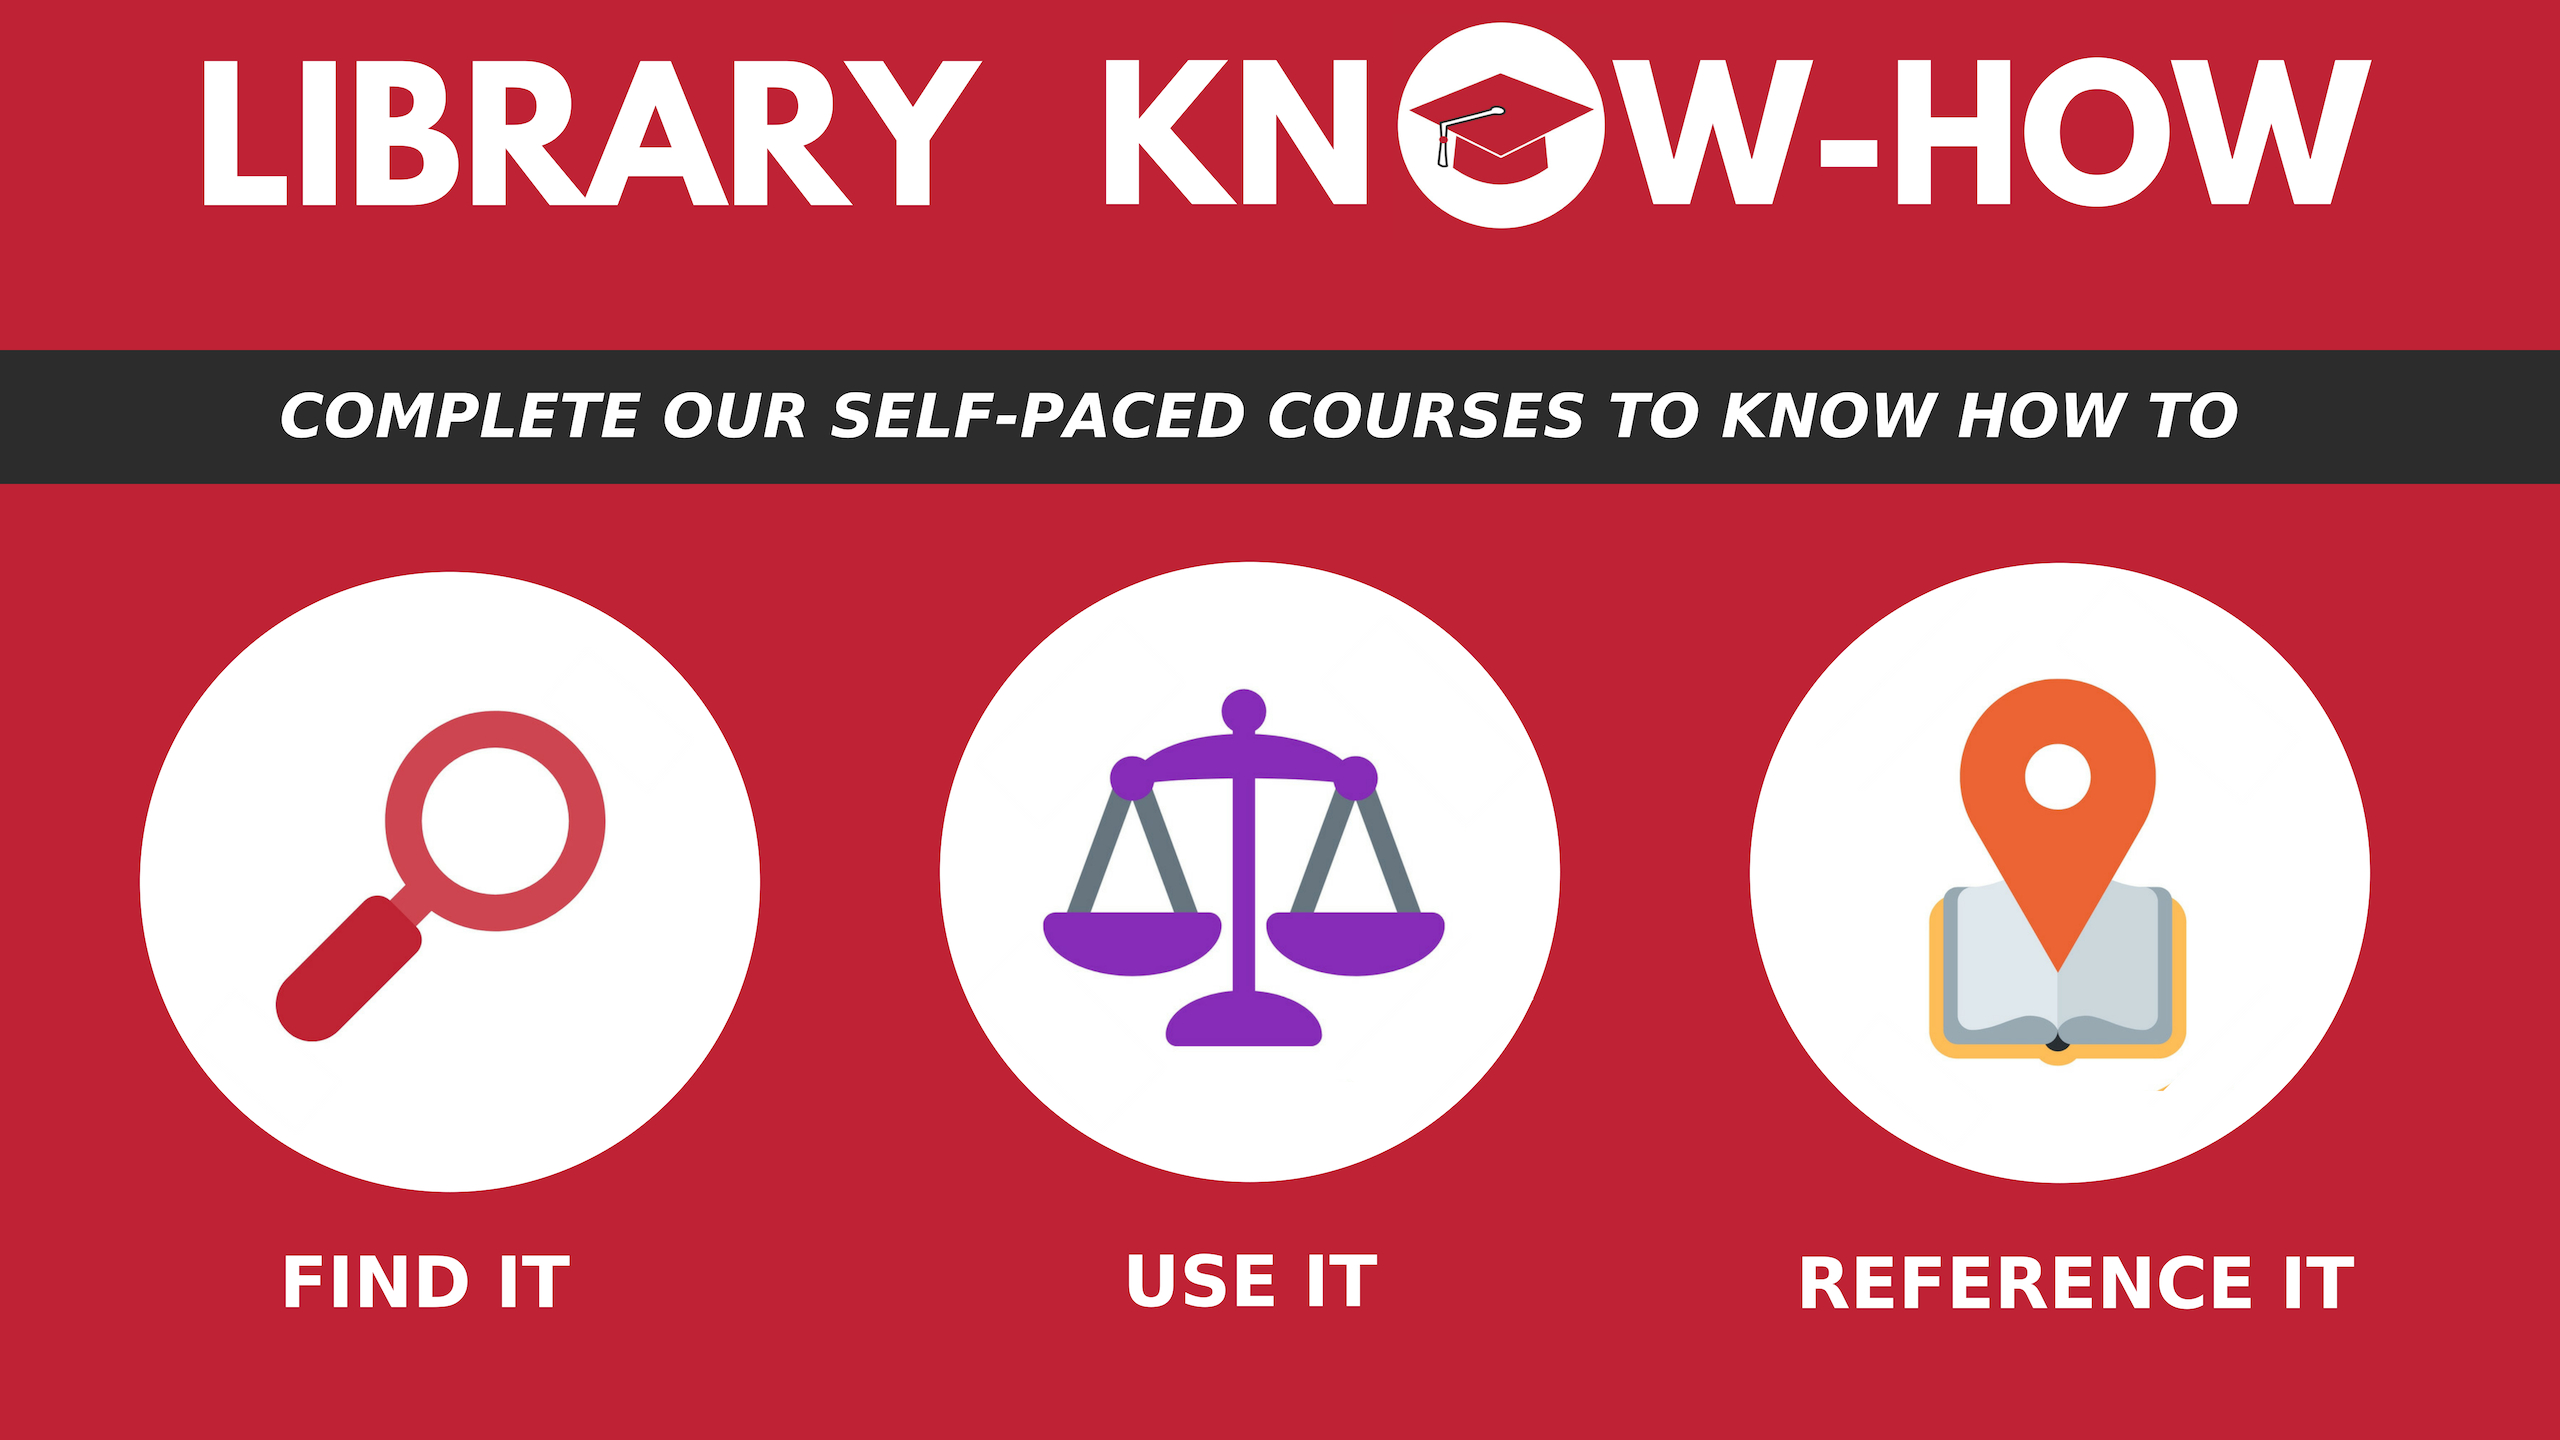 Complete our self-paced courses